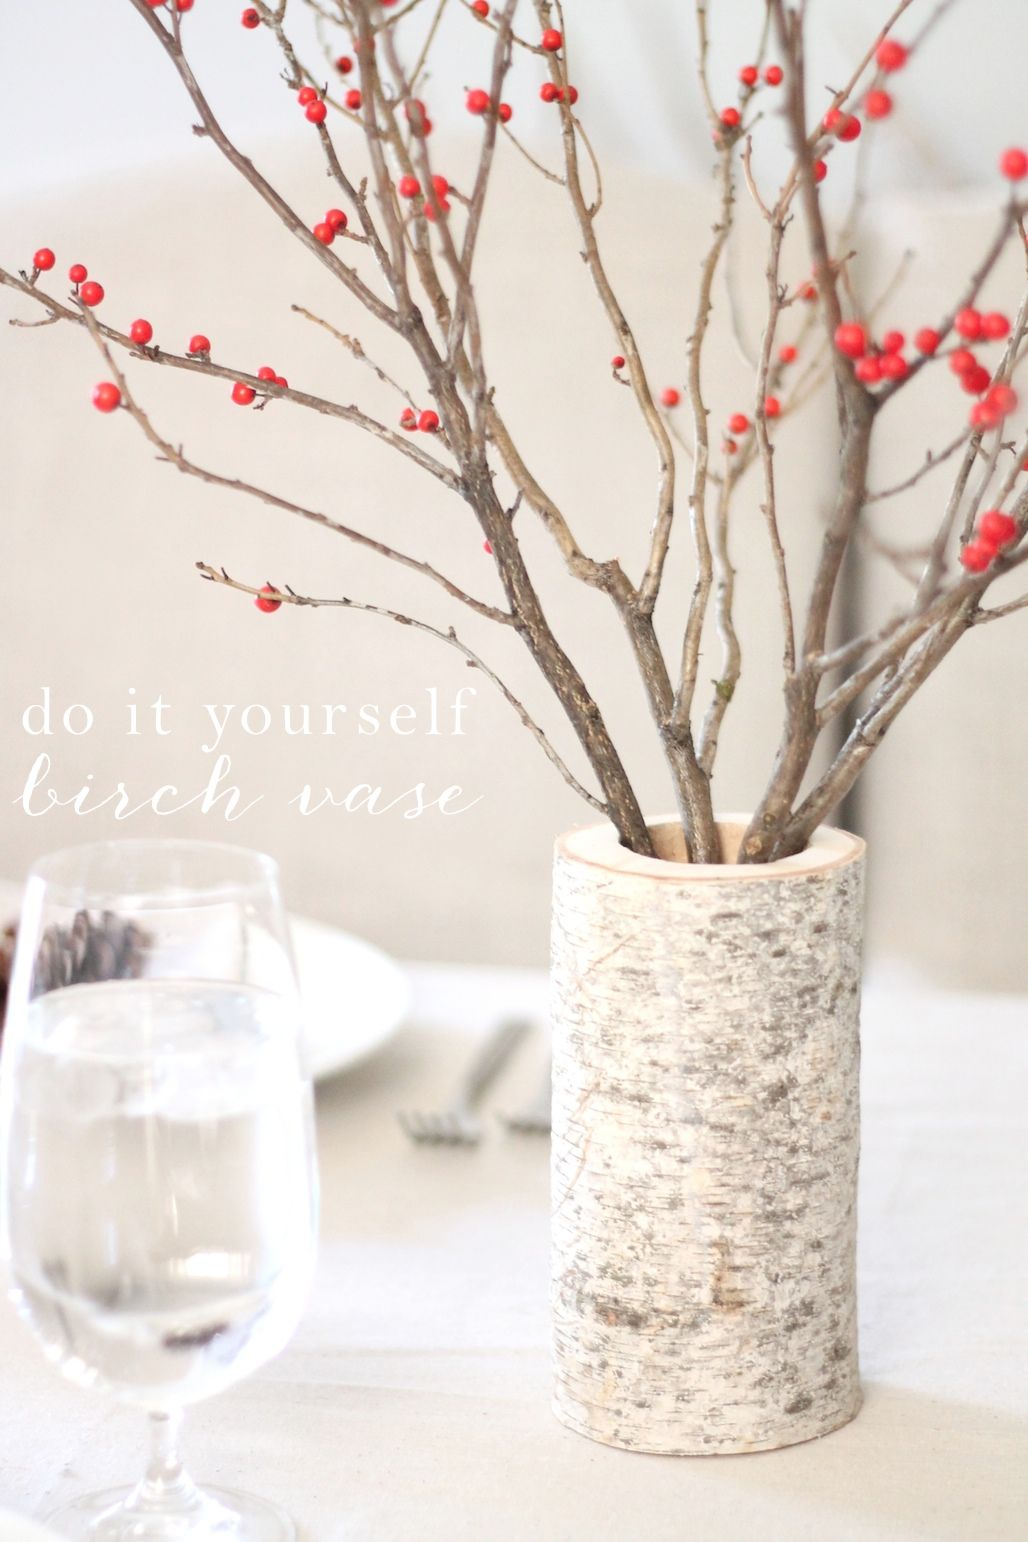 Diy Birch Vase Easy Holiday Centerpiece Holiday Centerpieces Christmas Decorations Rustic Birch Tree Decor